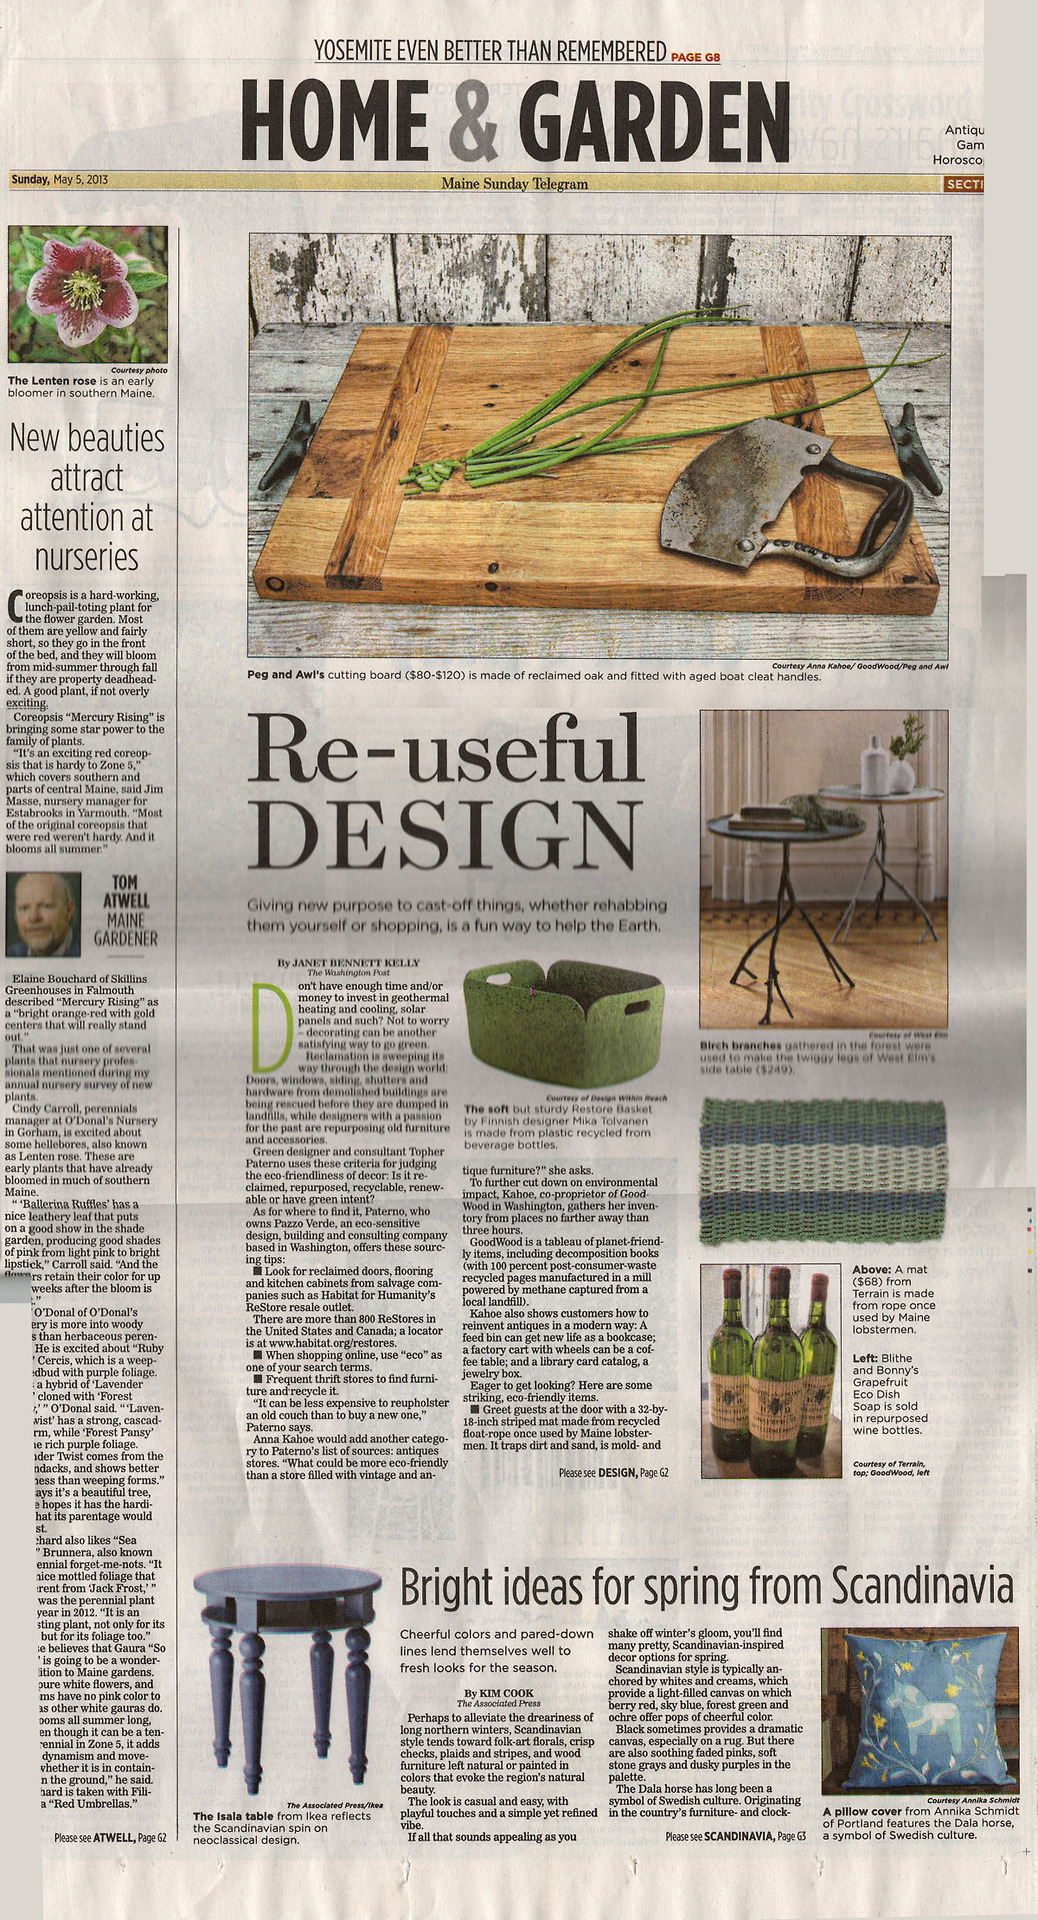 Hey Maine, did you get your Maine Sunday Telegram this morning? Check out the Home & Garden Section! A little support from my beautiful home state: